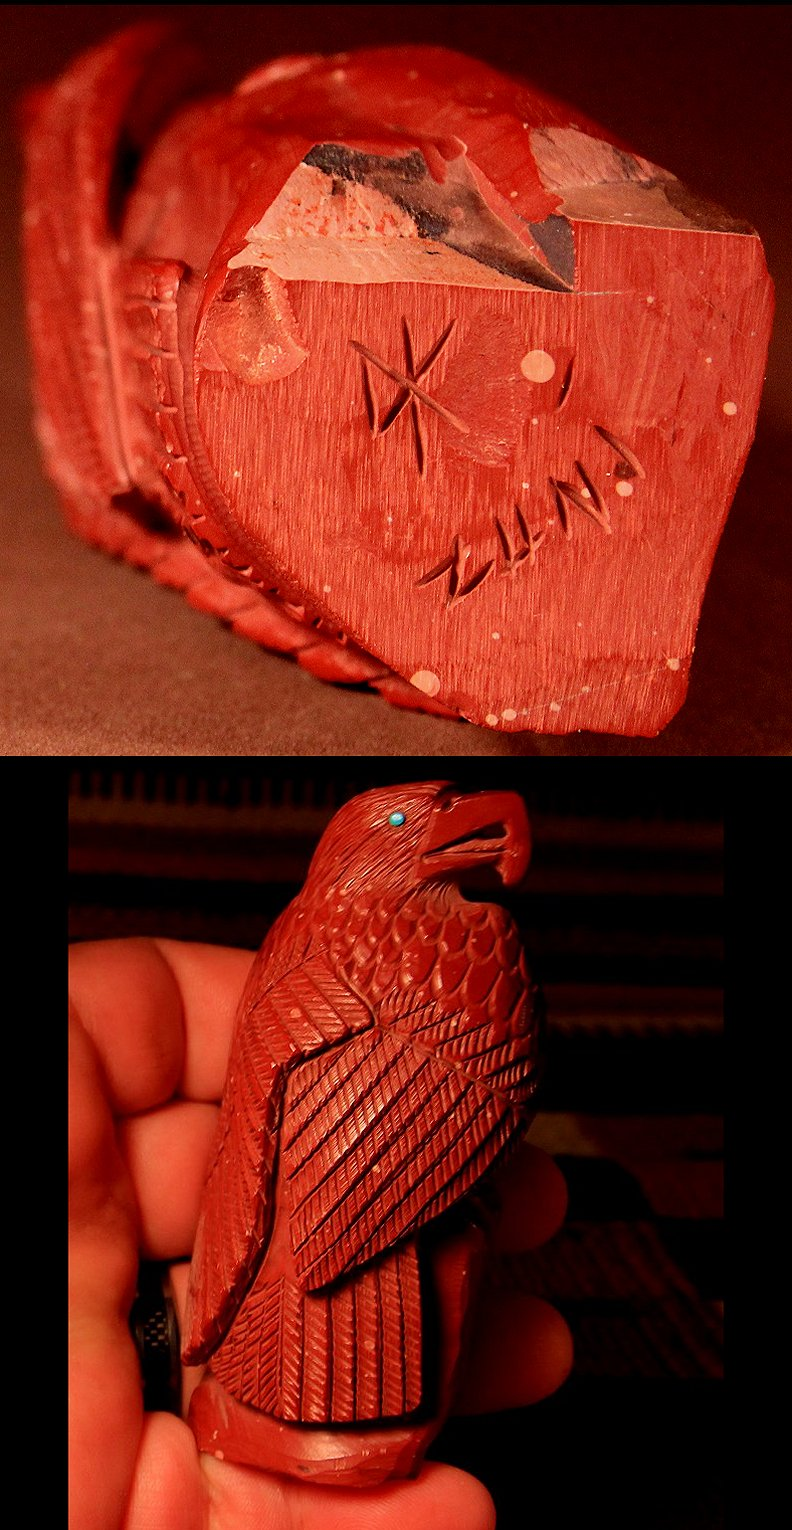 Zuni Spirits is proud to represent a variety of Zuni fetish carvers, including Derrick Kaamasee!